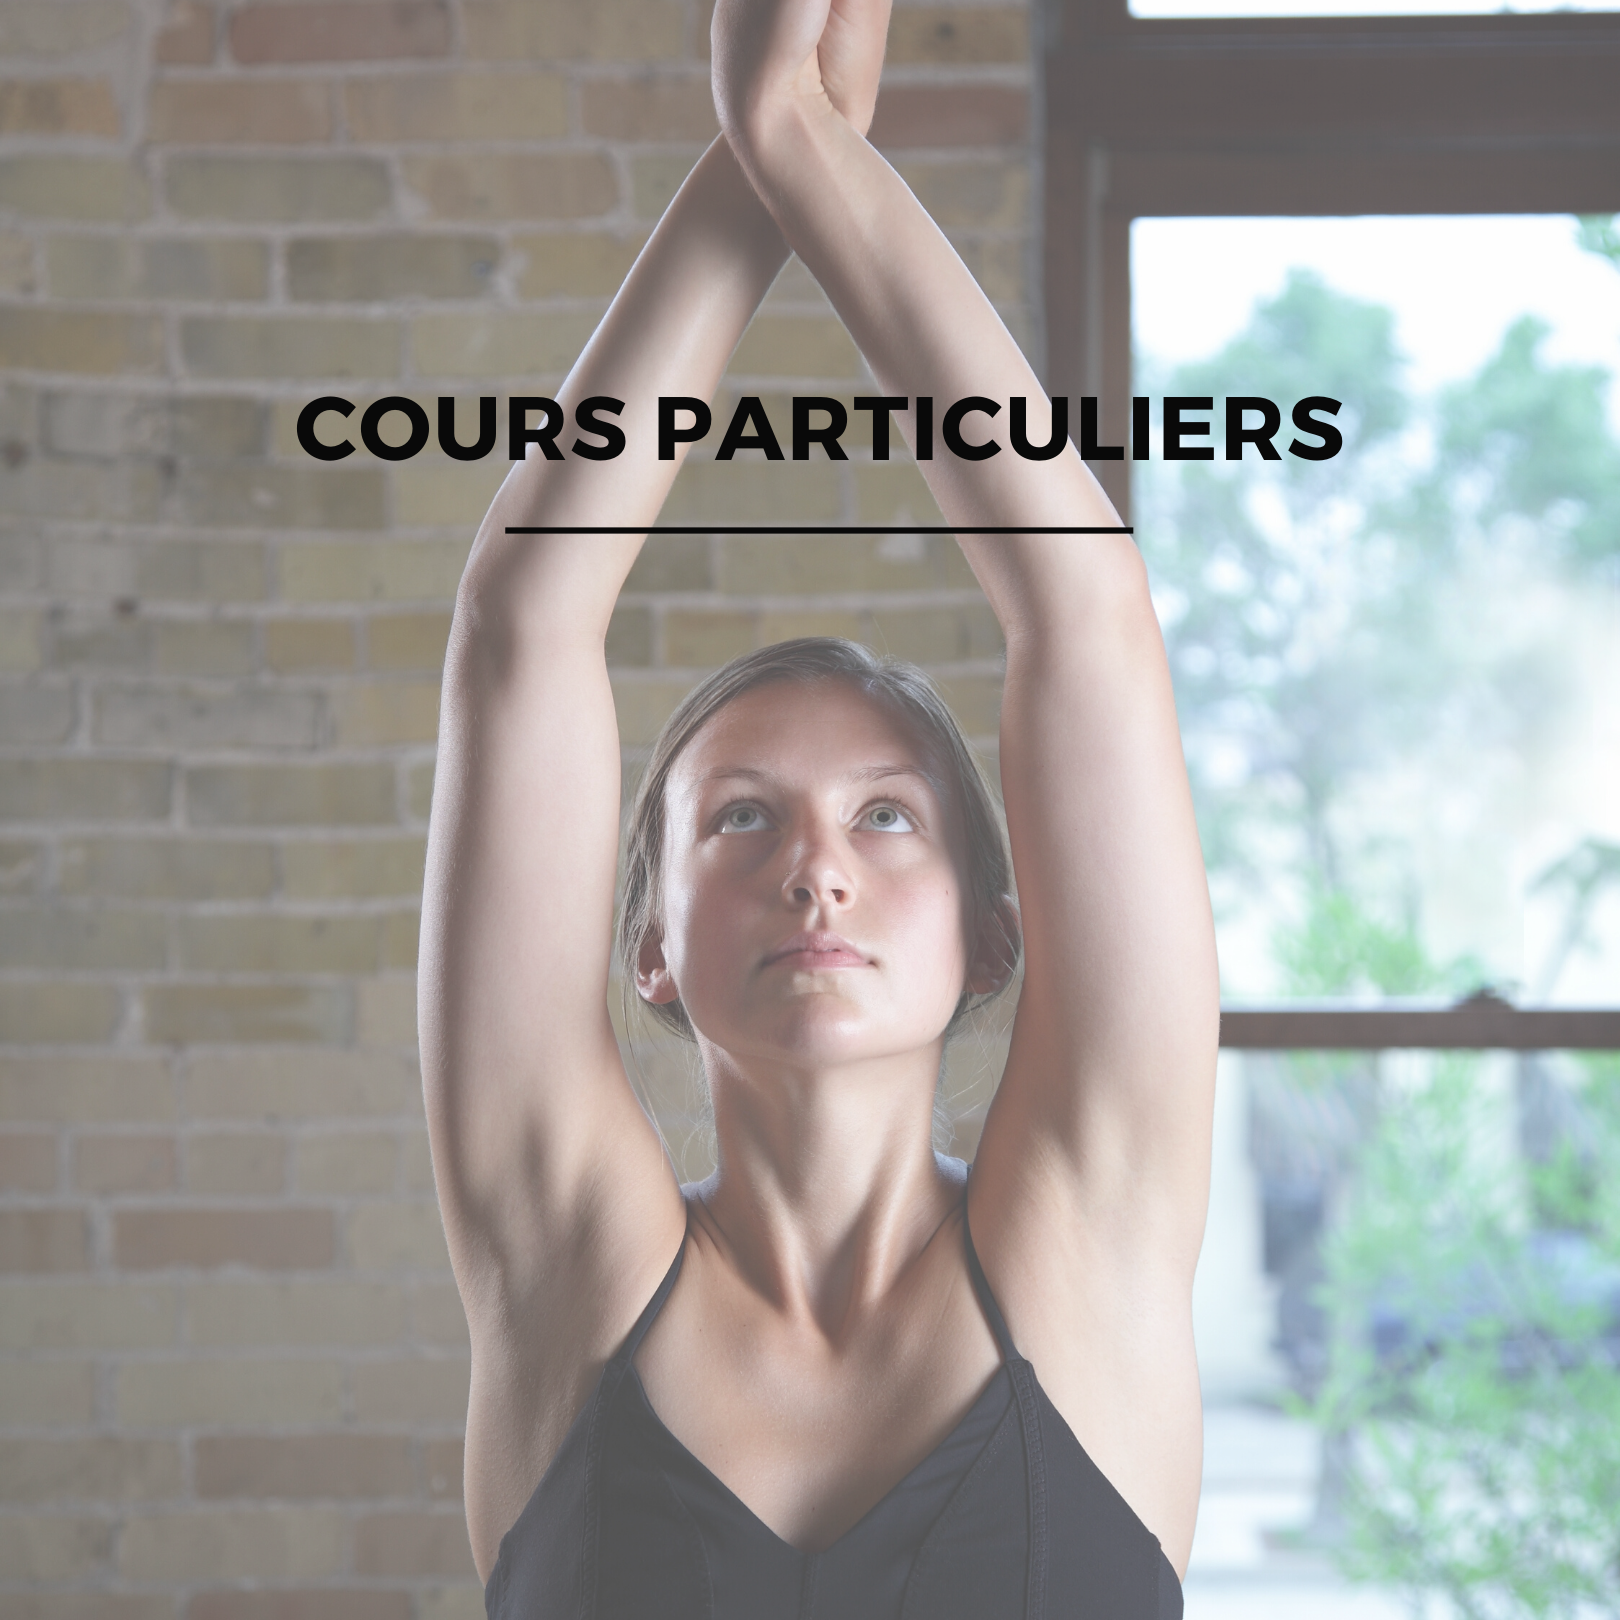 9CourParticulier